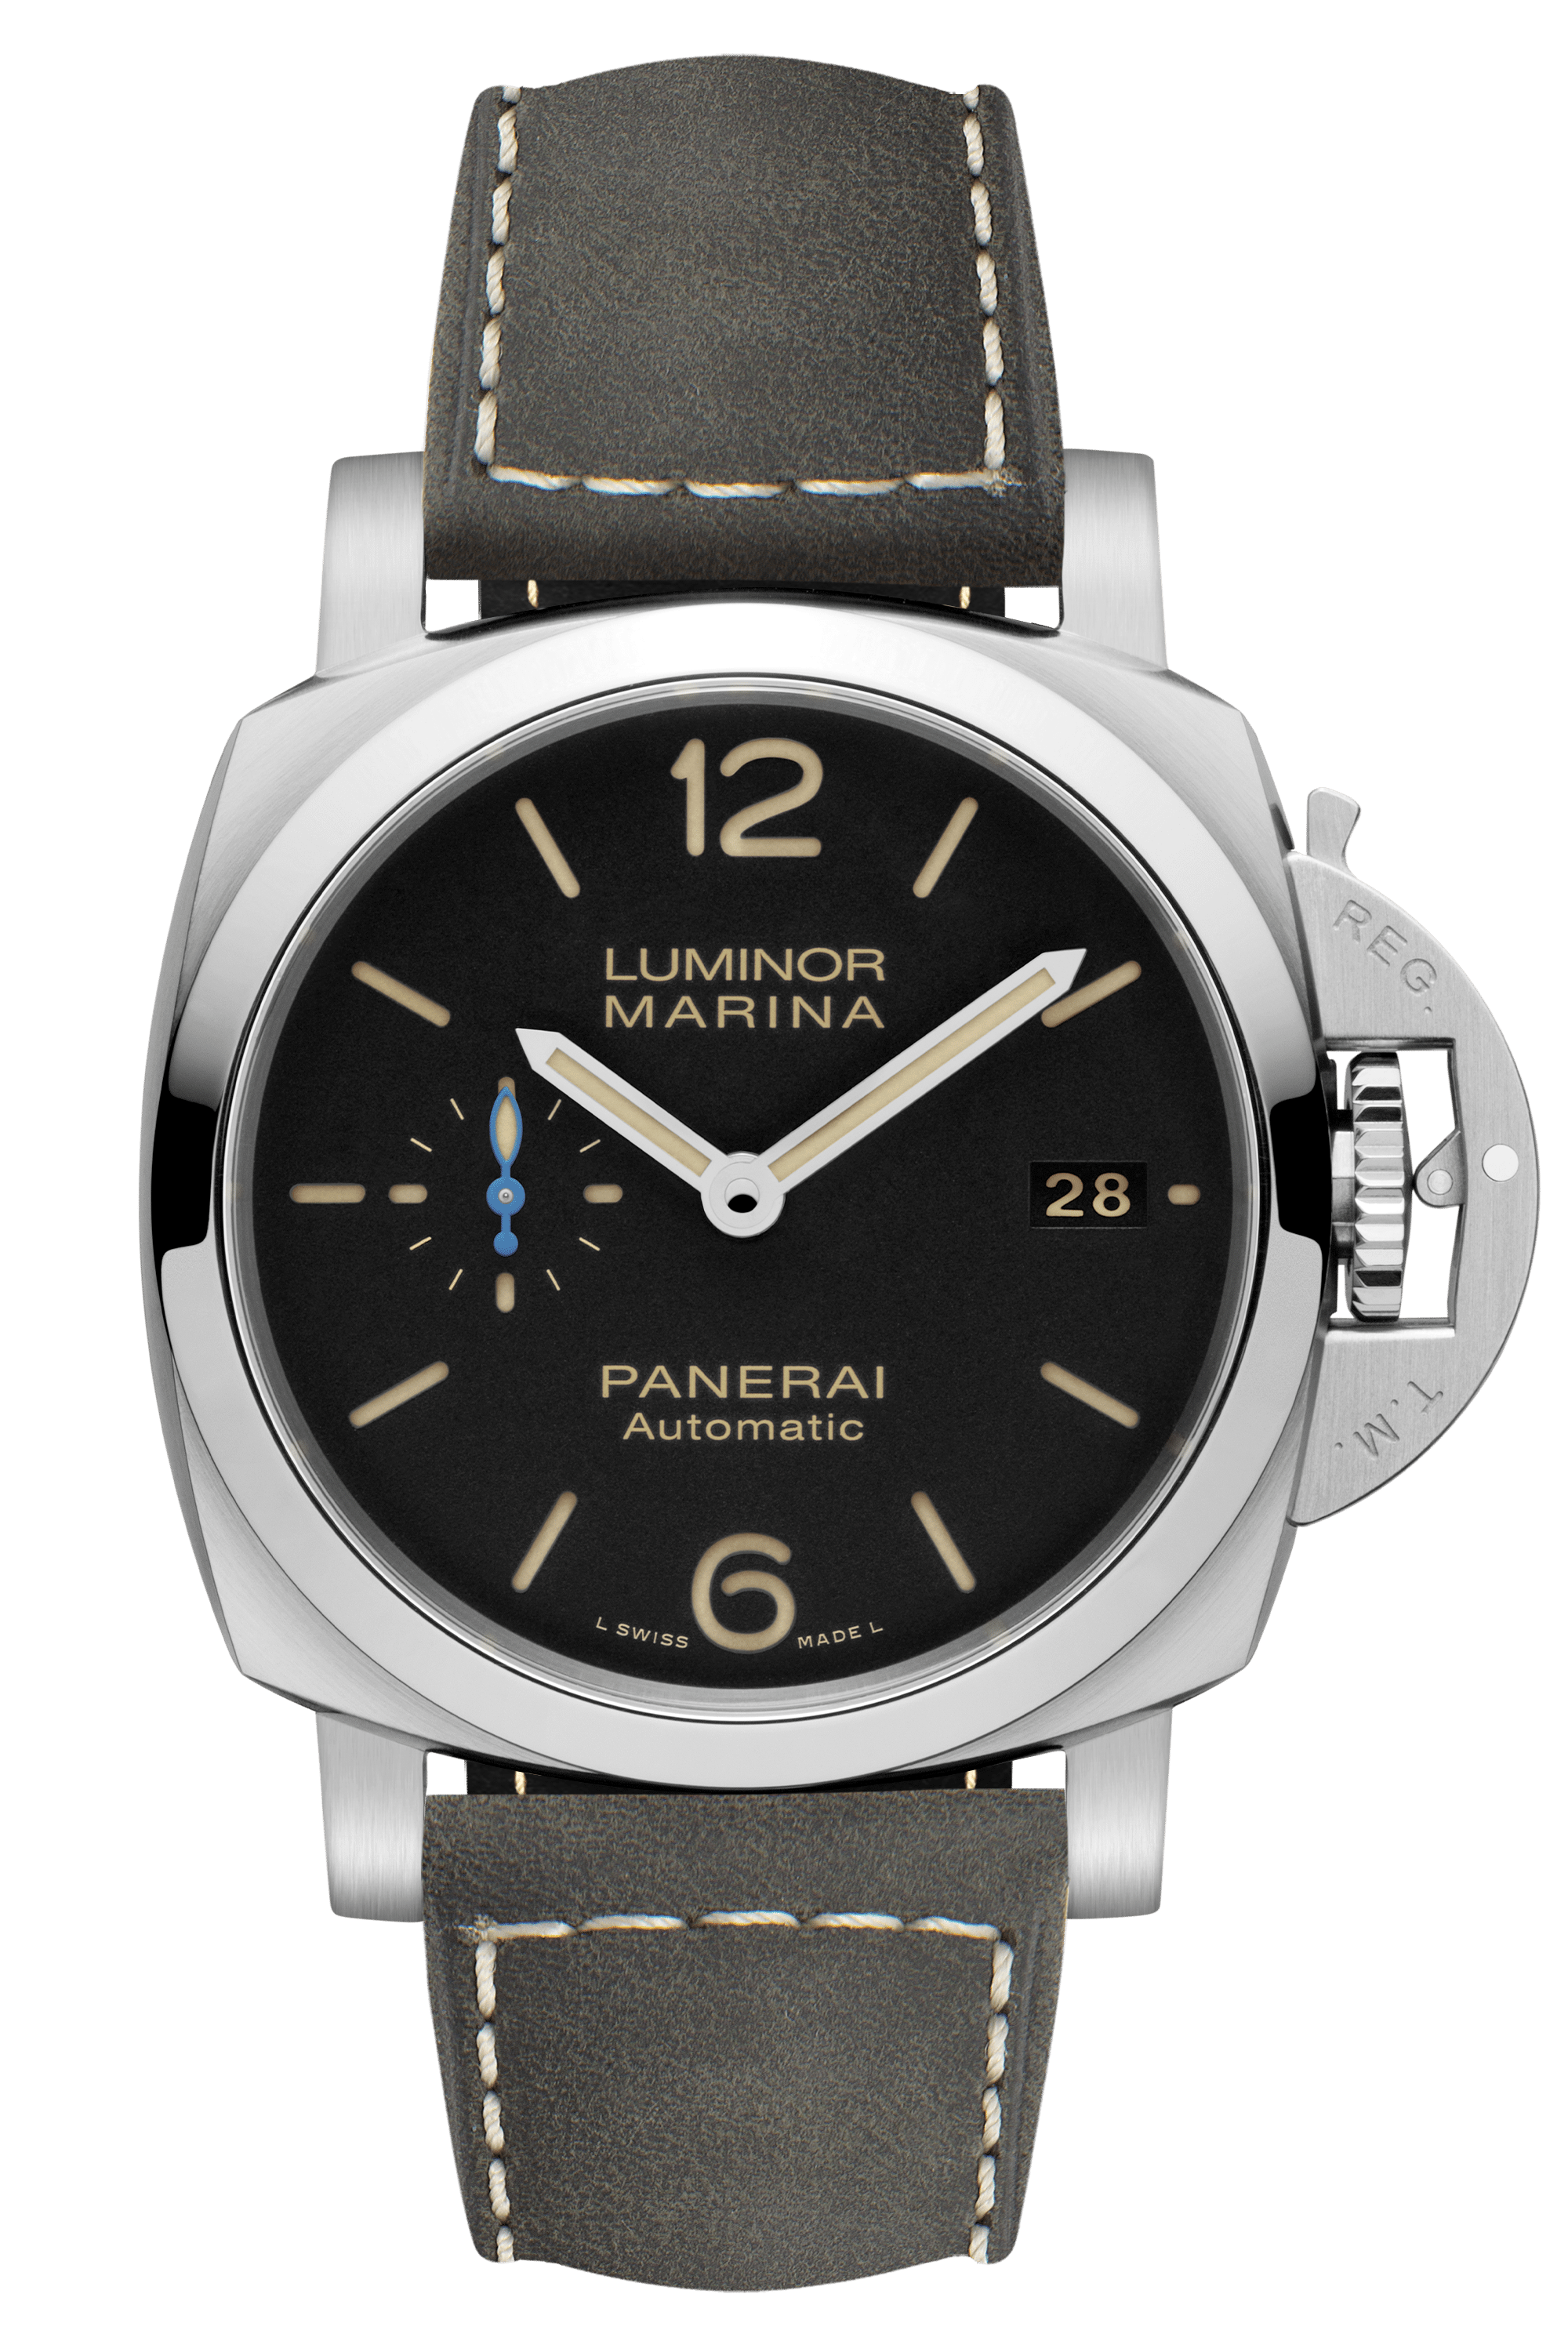 PNPAM01392 - Luminor Marina - 42mm